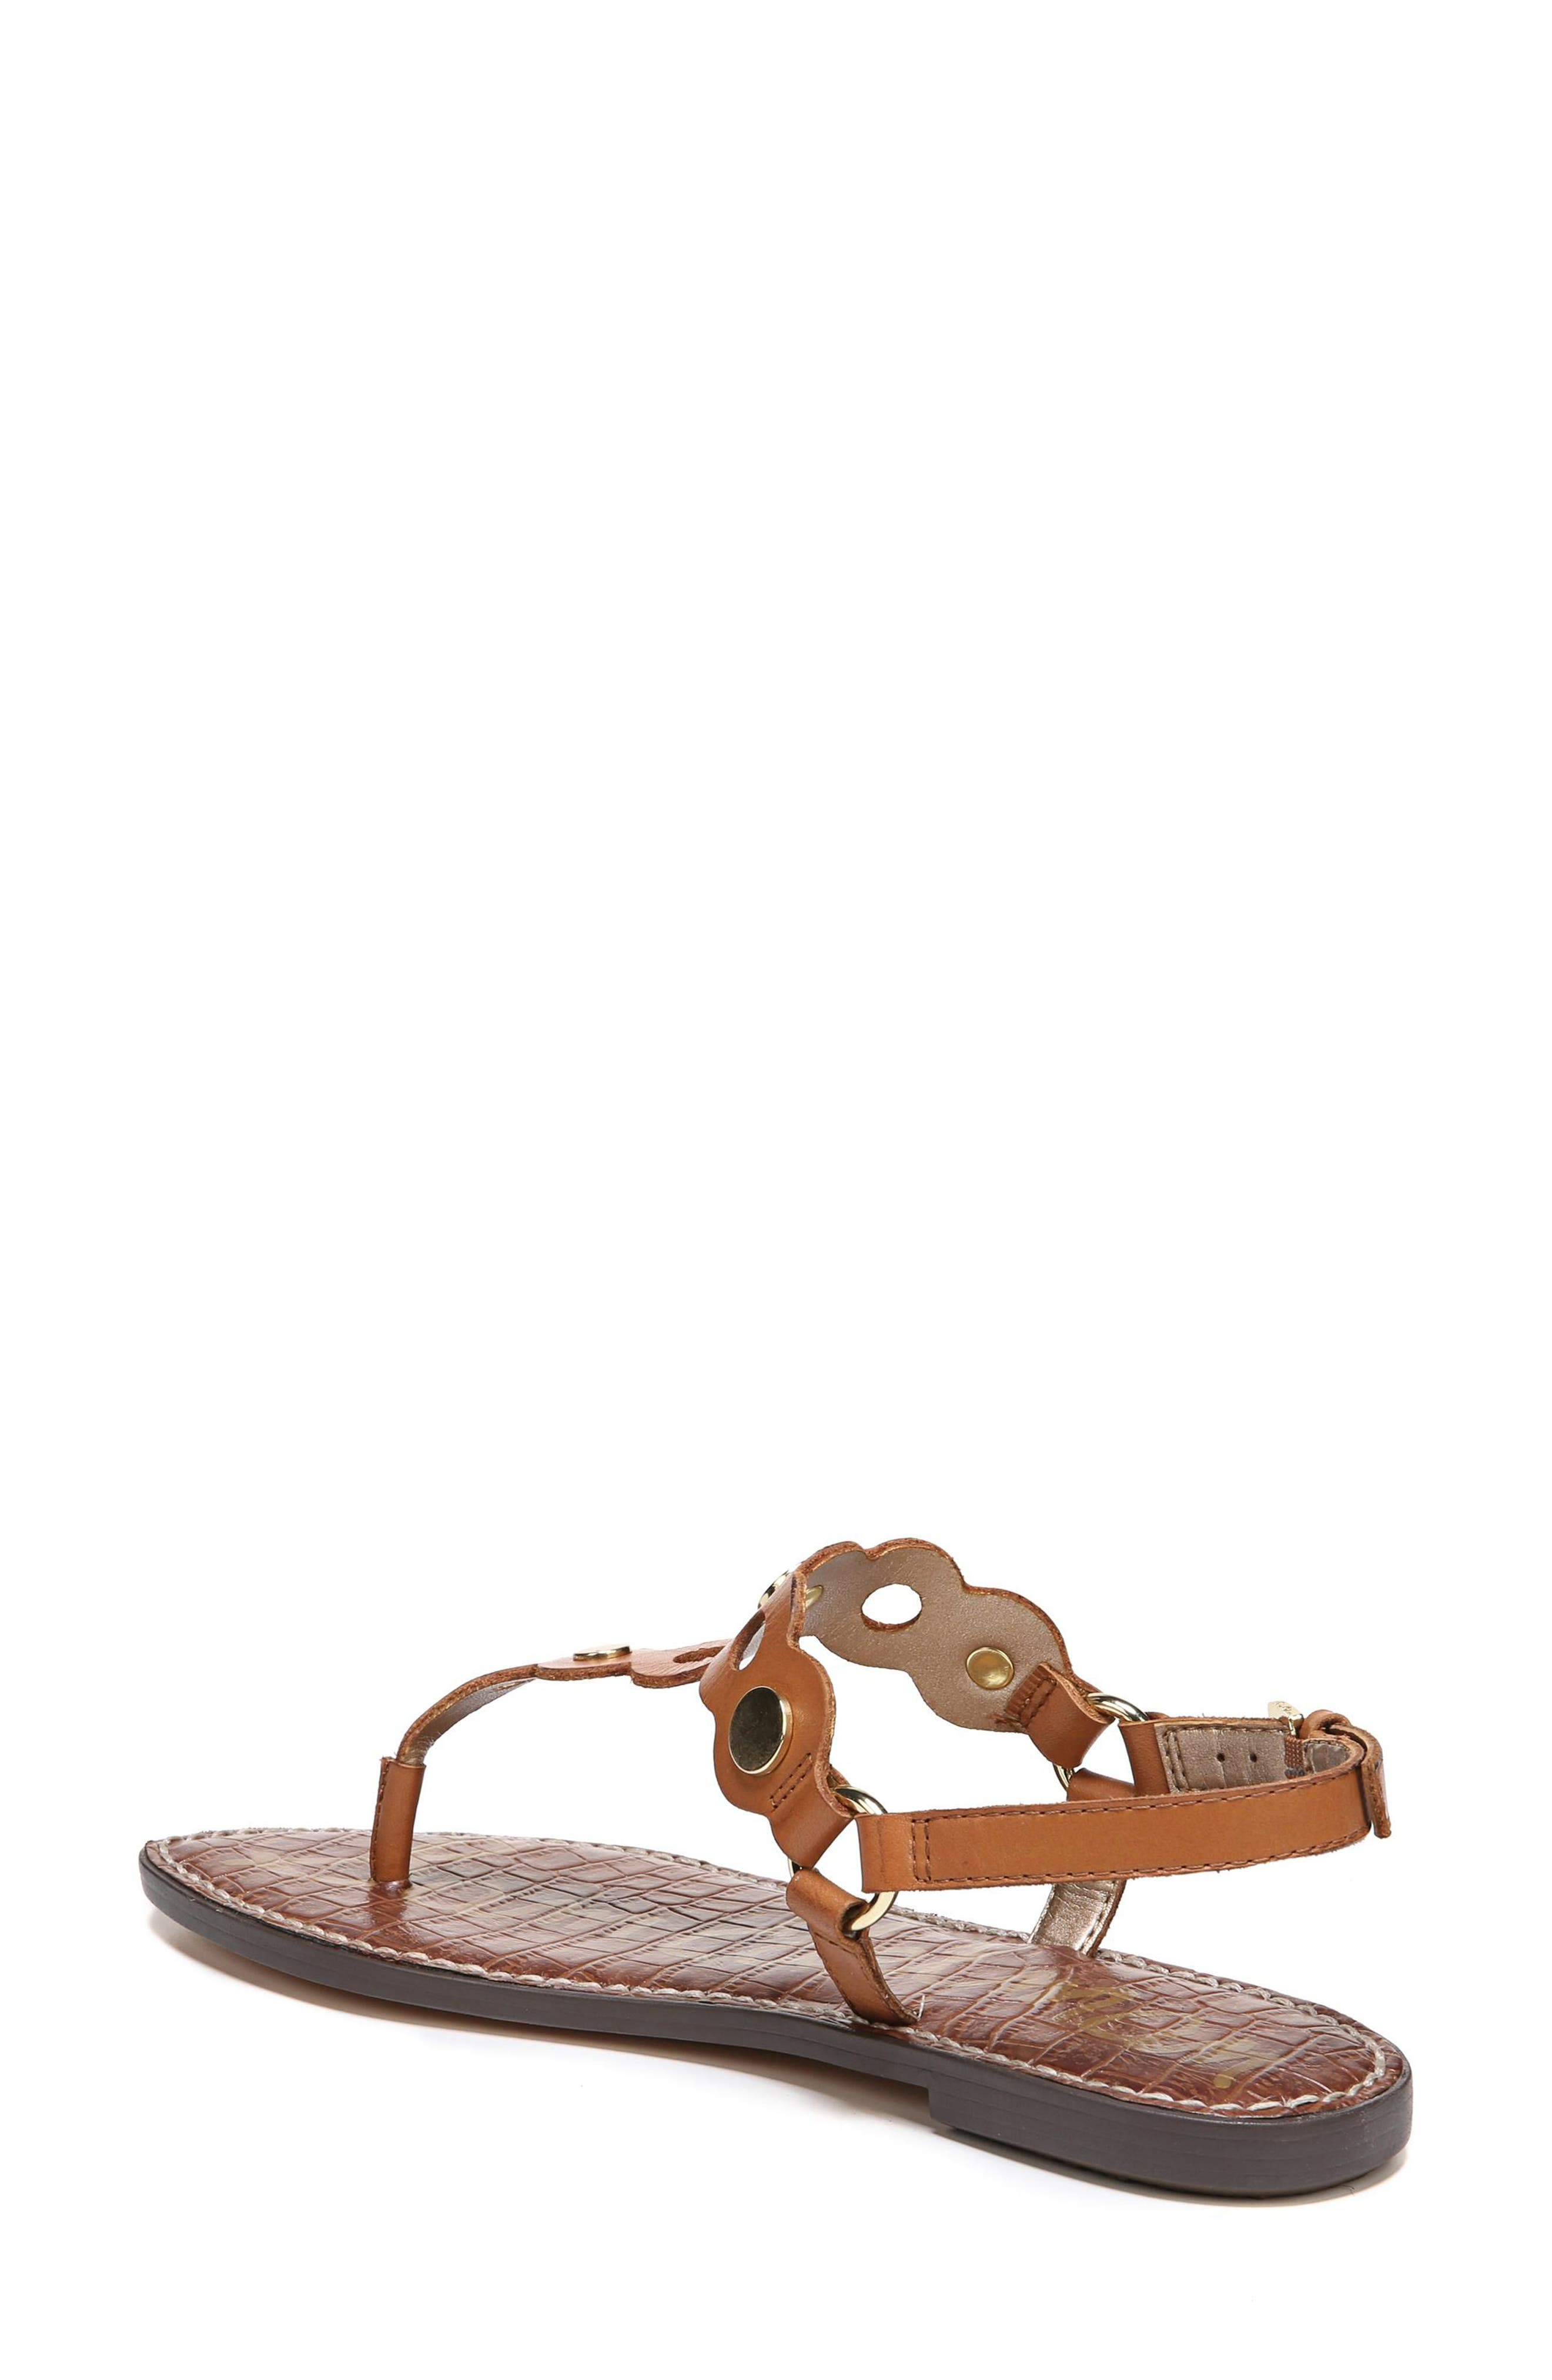 Gilly T-Strap Sandal,                             Alternate thumbnail 8, color,